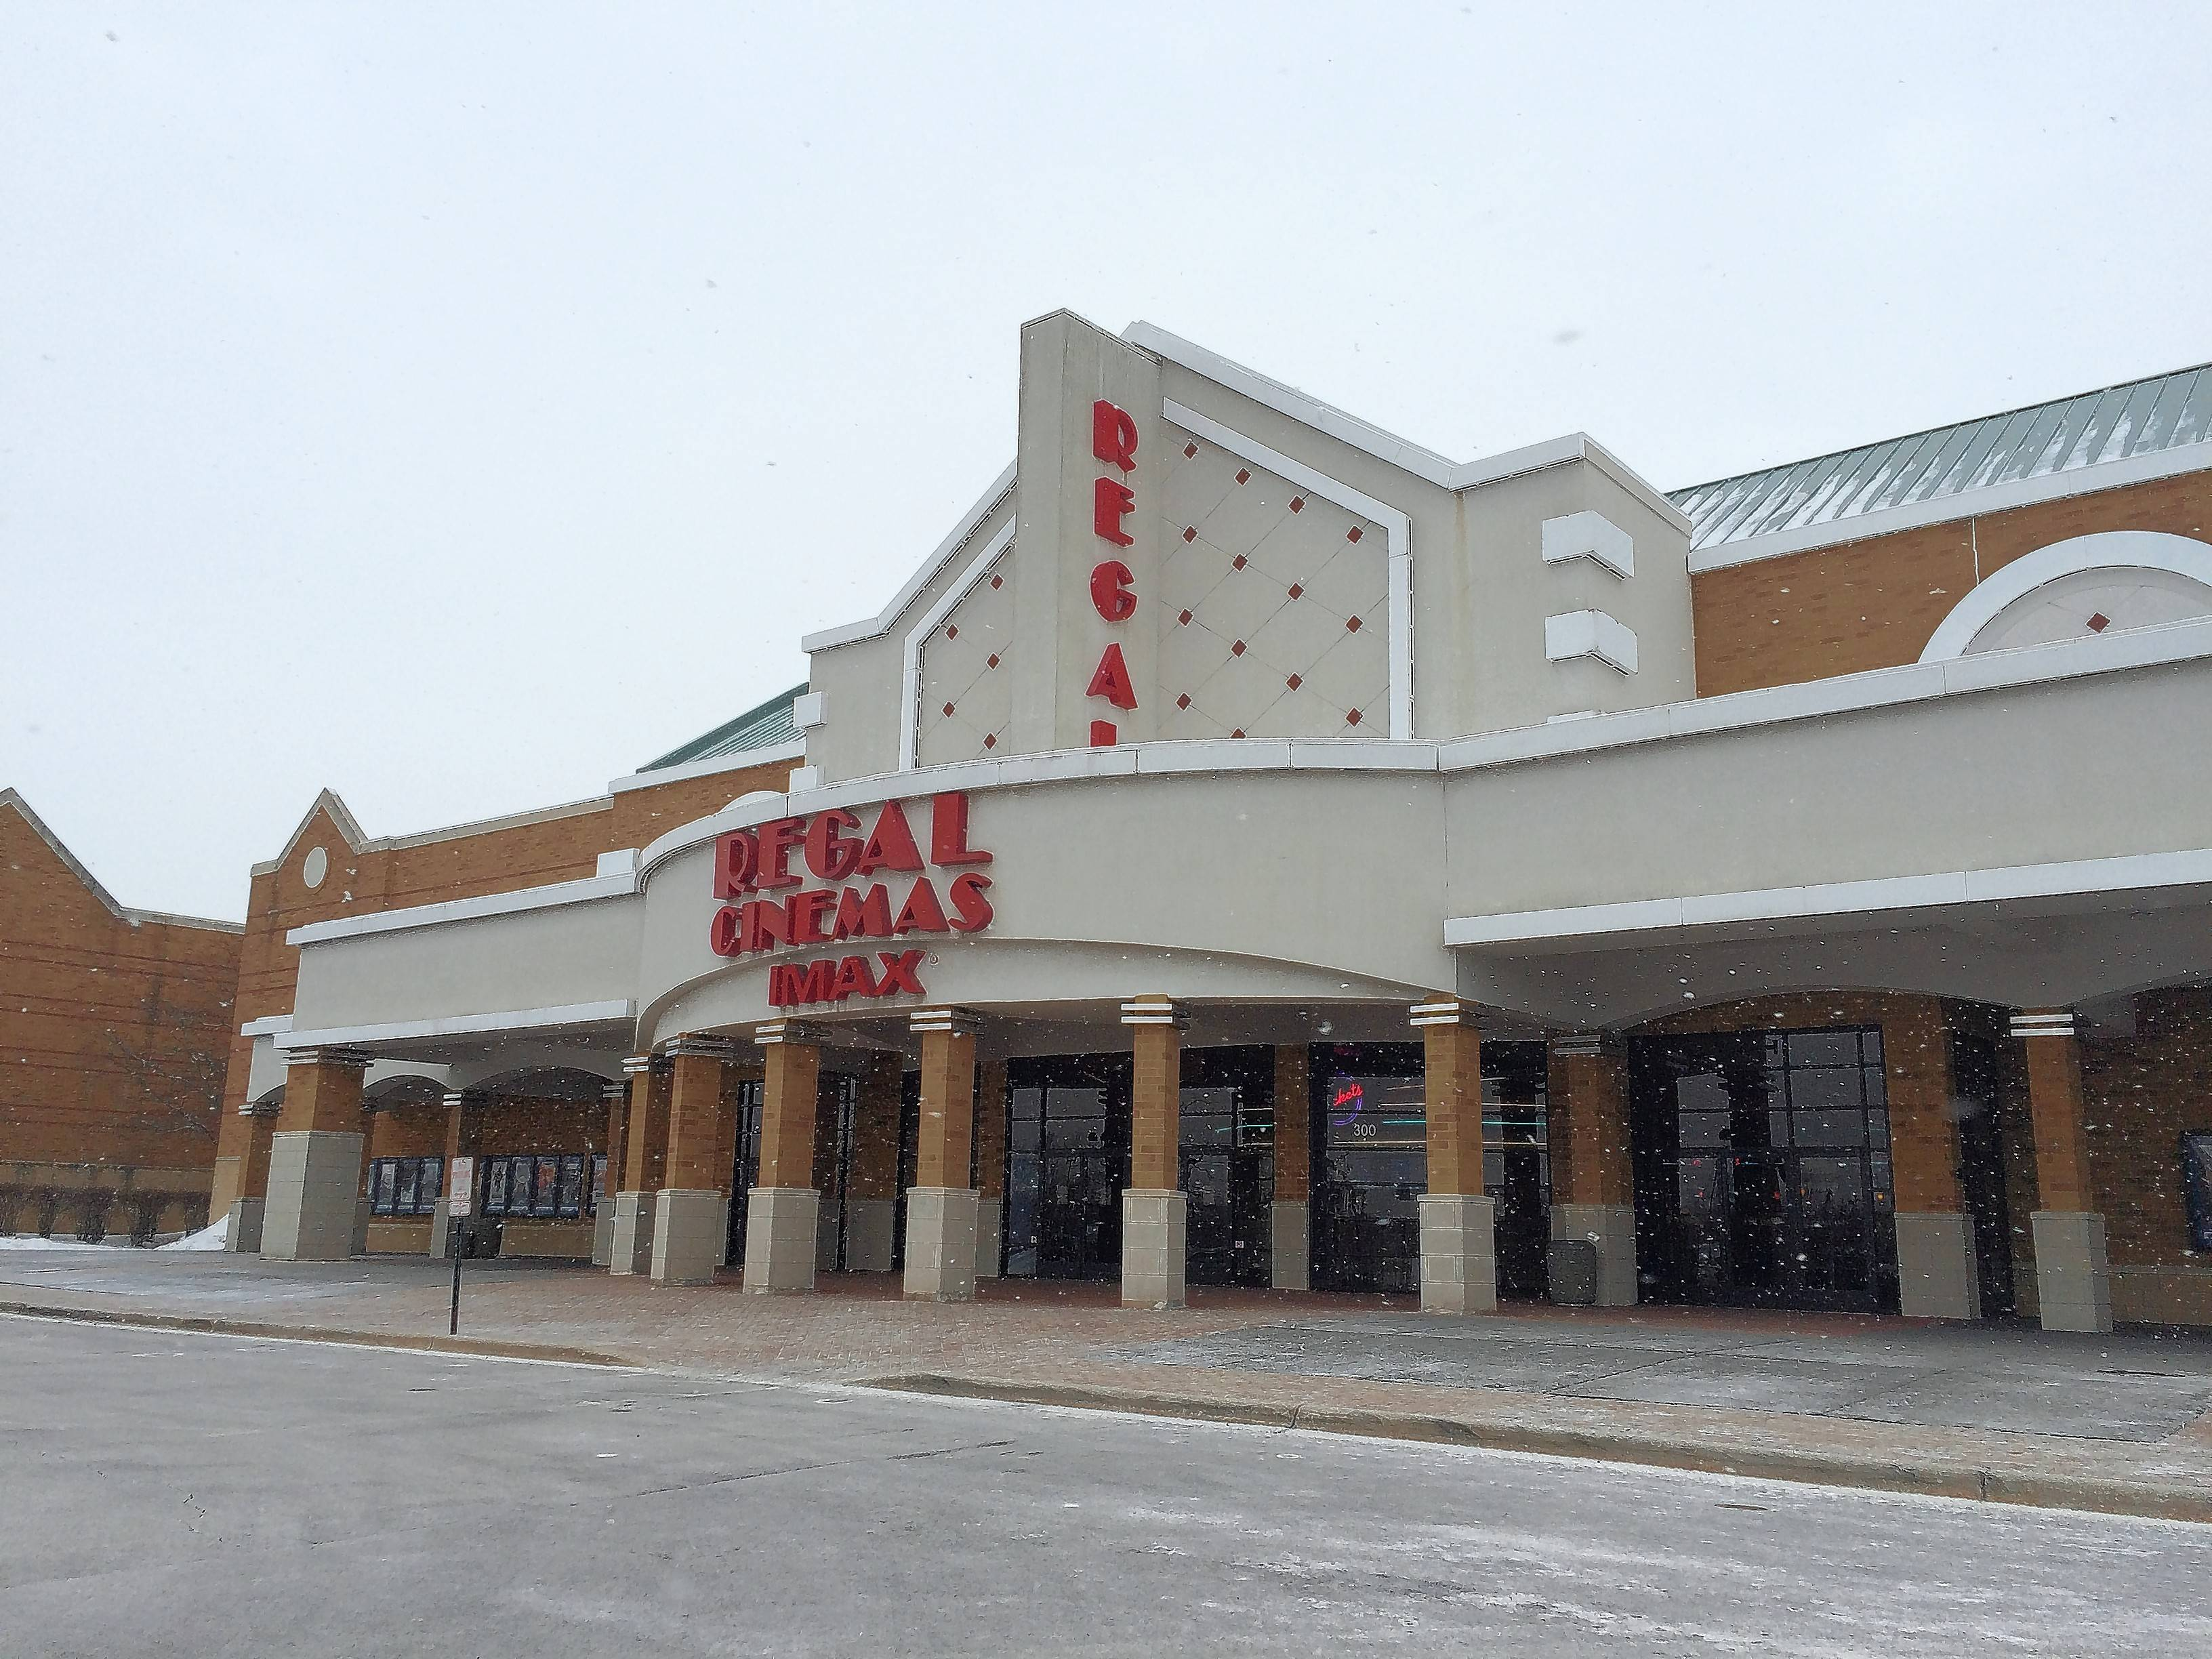 A plan to redevelop part of the Regal Cinemas movie house in Lincolnshire could get village approval May 9.